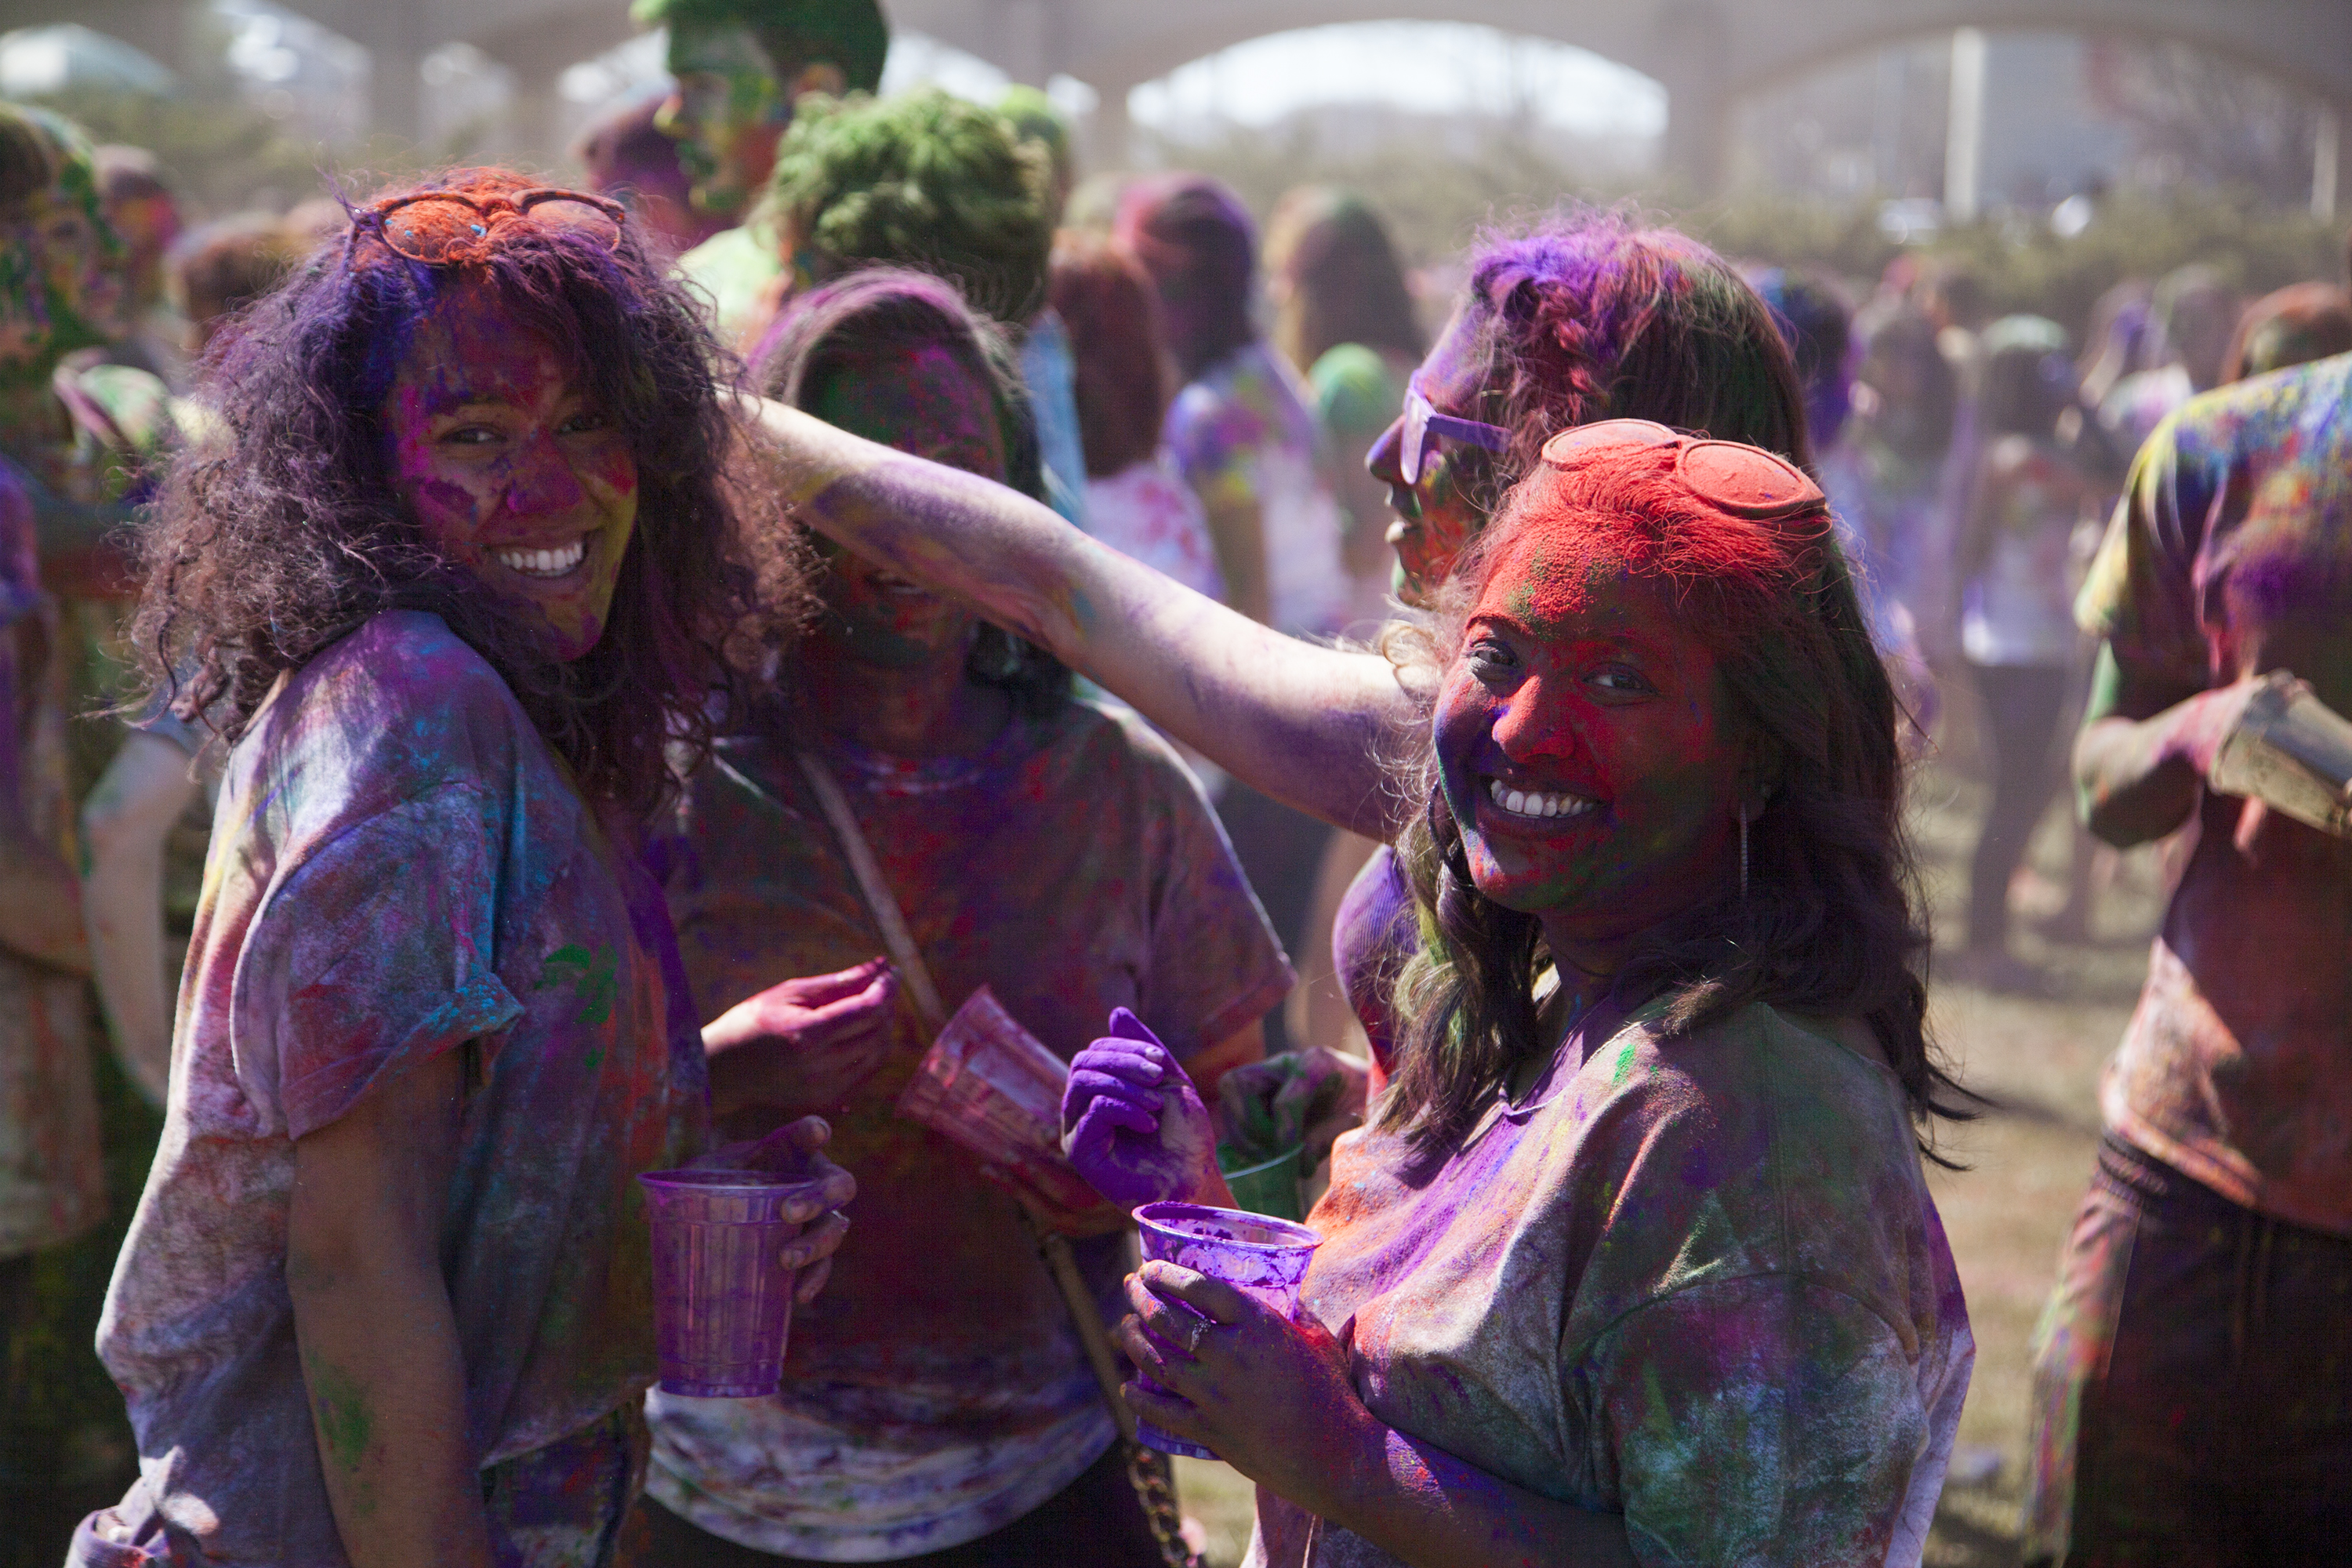 Catherine Rodriguez, left, Naurin and Stalla Saimon, right, celebrate Holi. ERIC SCHMID/THE STATESMAN